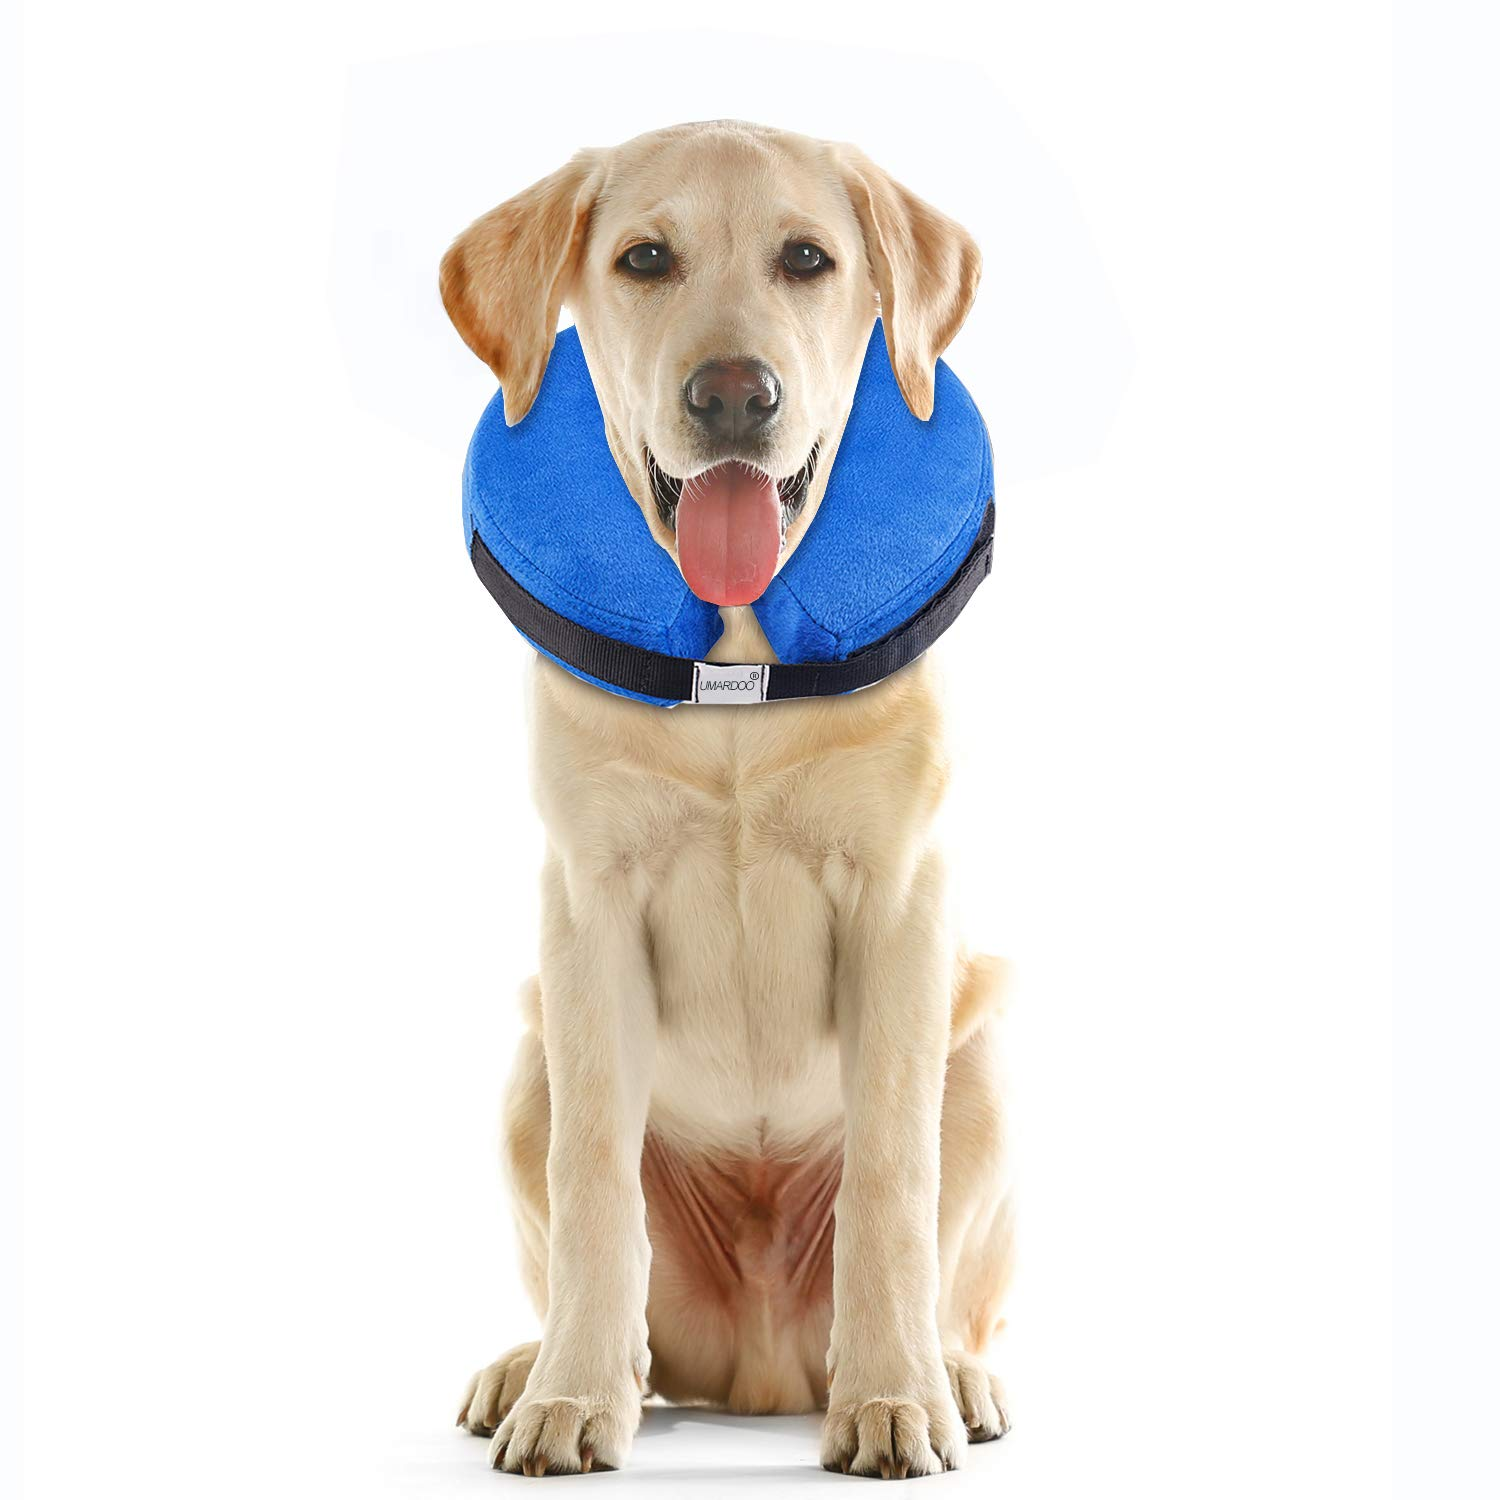 UMARDOO Inflatable Dog Cone Collar After Surgery,Pet Recovery Collar for Dogs Wound Healing with Adjustable Strap (Blue Cone-L) by UMARDOO